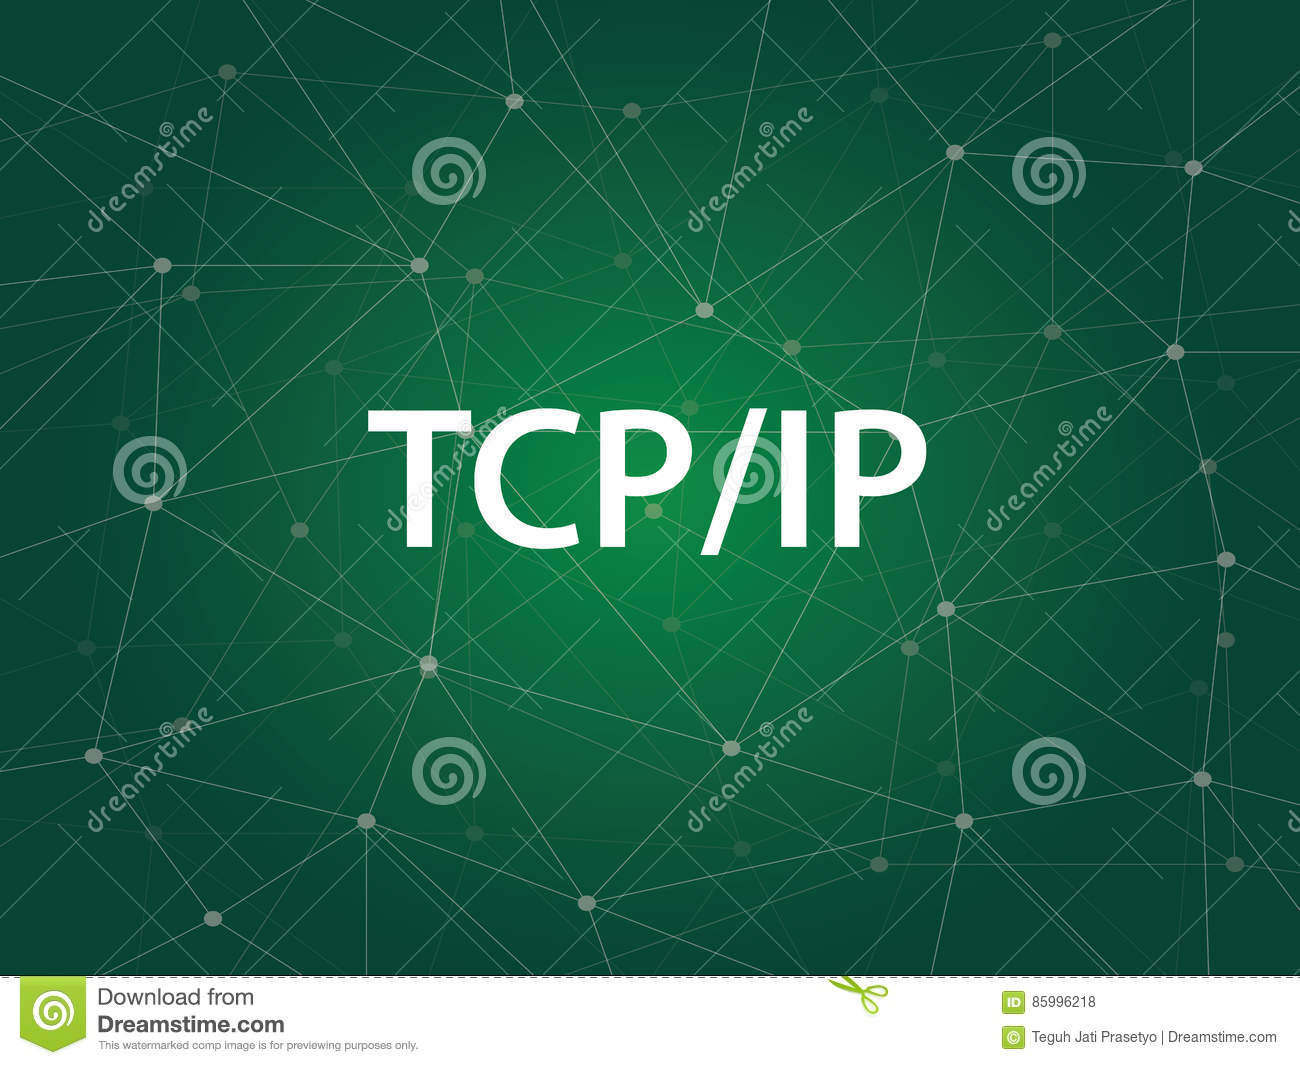 Circuit Board And Binary Code Stock Vector Clipart Transmission Of Tcp Ip Networking Control Protocol Internet Royalty Free Is A Set Rules Protocols Governing